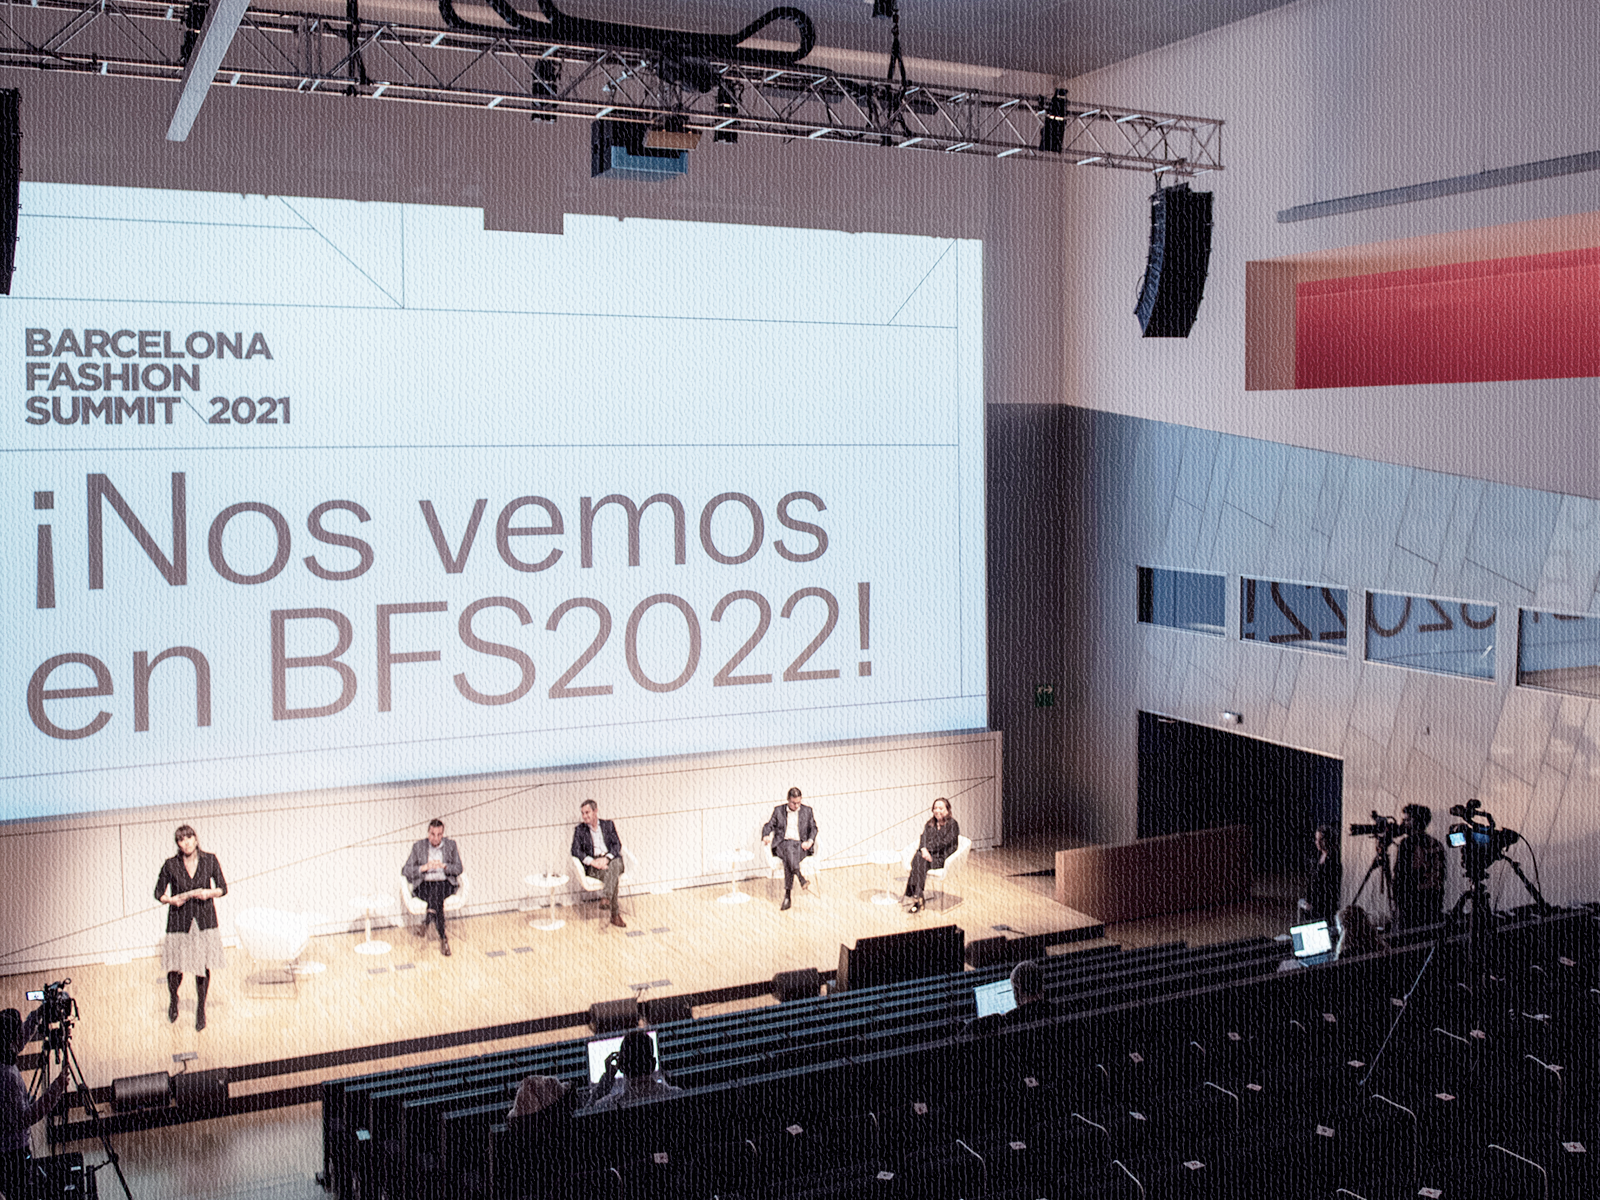 /bfs21/slideshows/11.png